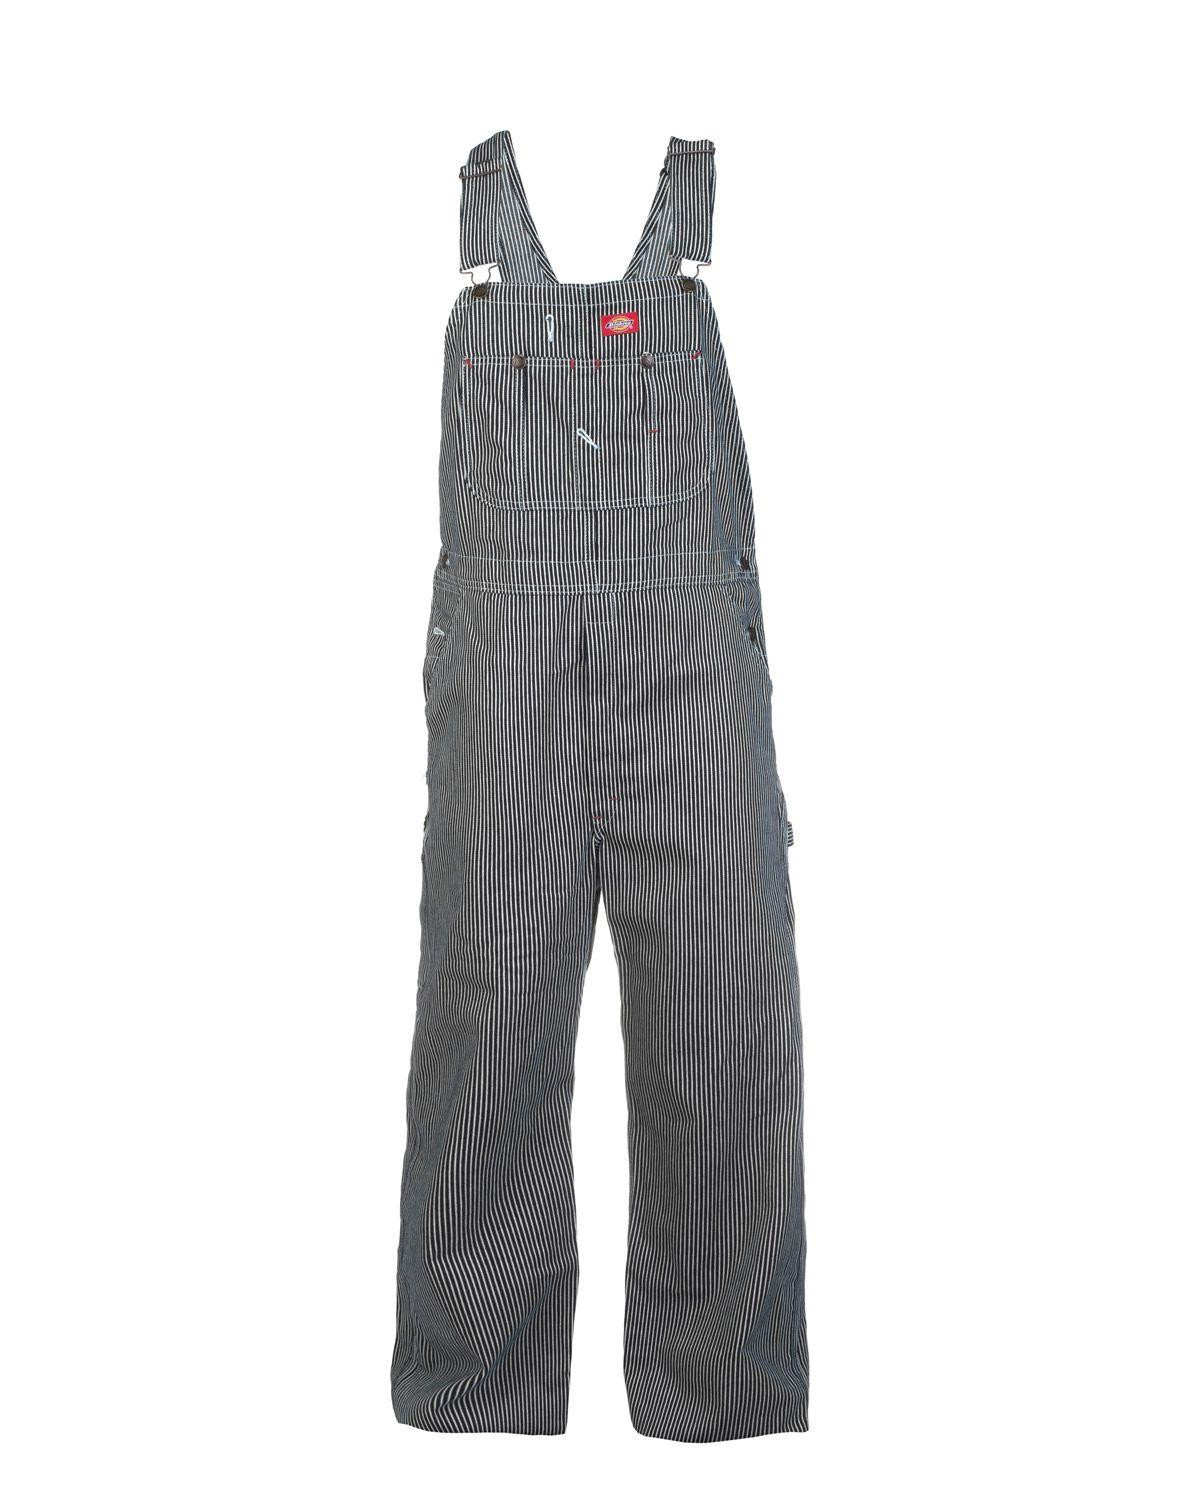 Image of   Dickies Bib Overall (Hickory Stripe, W30 / L32)